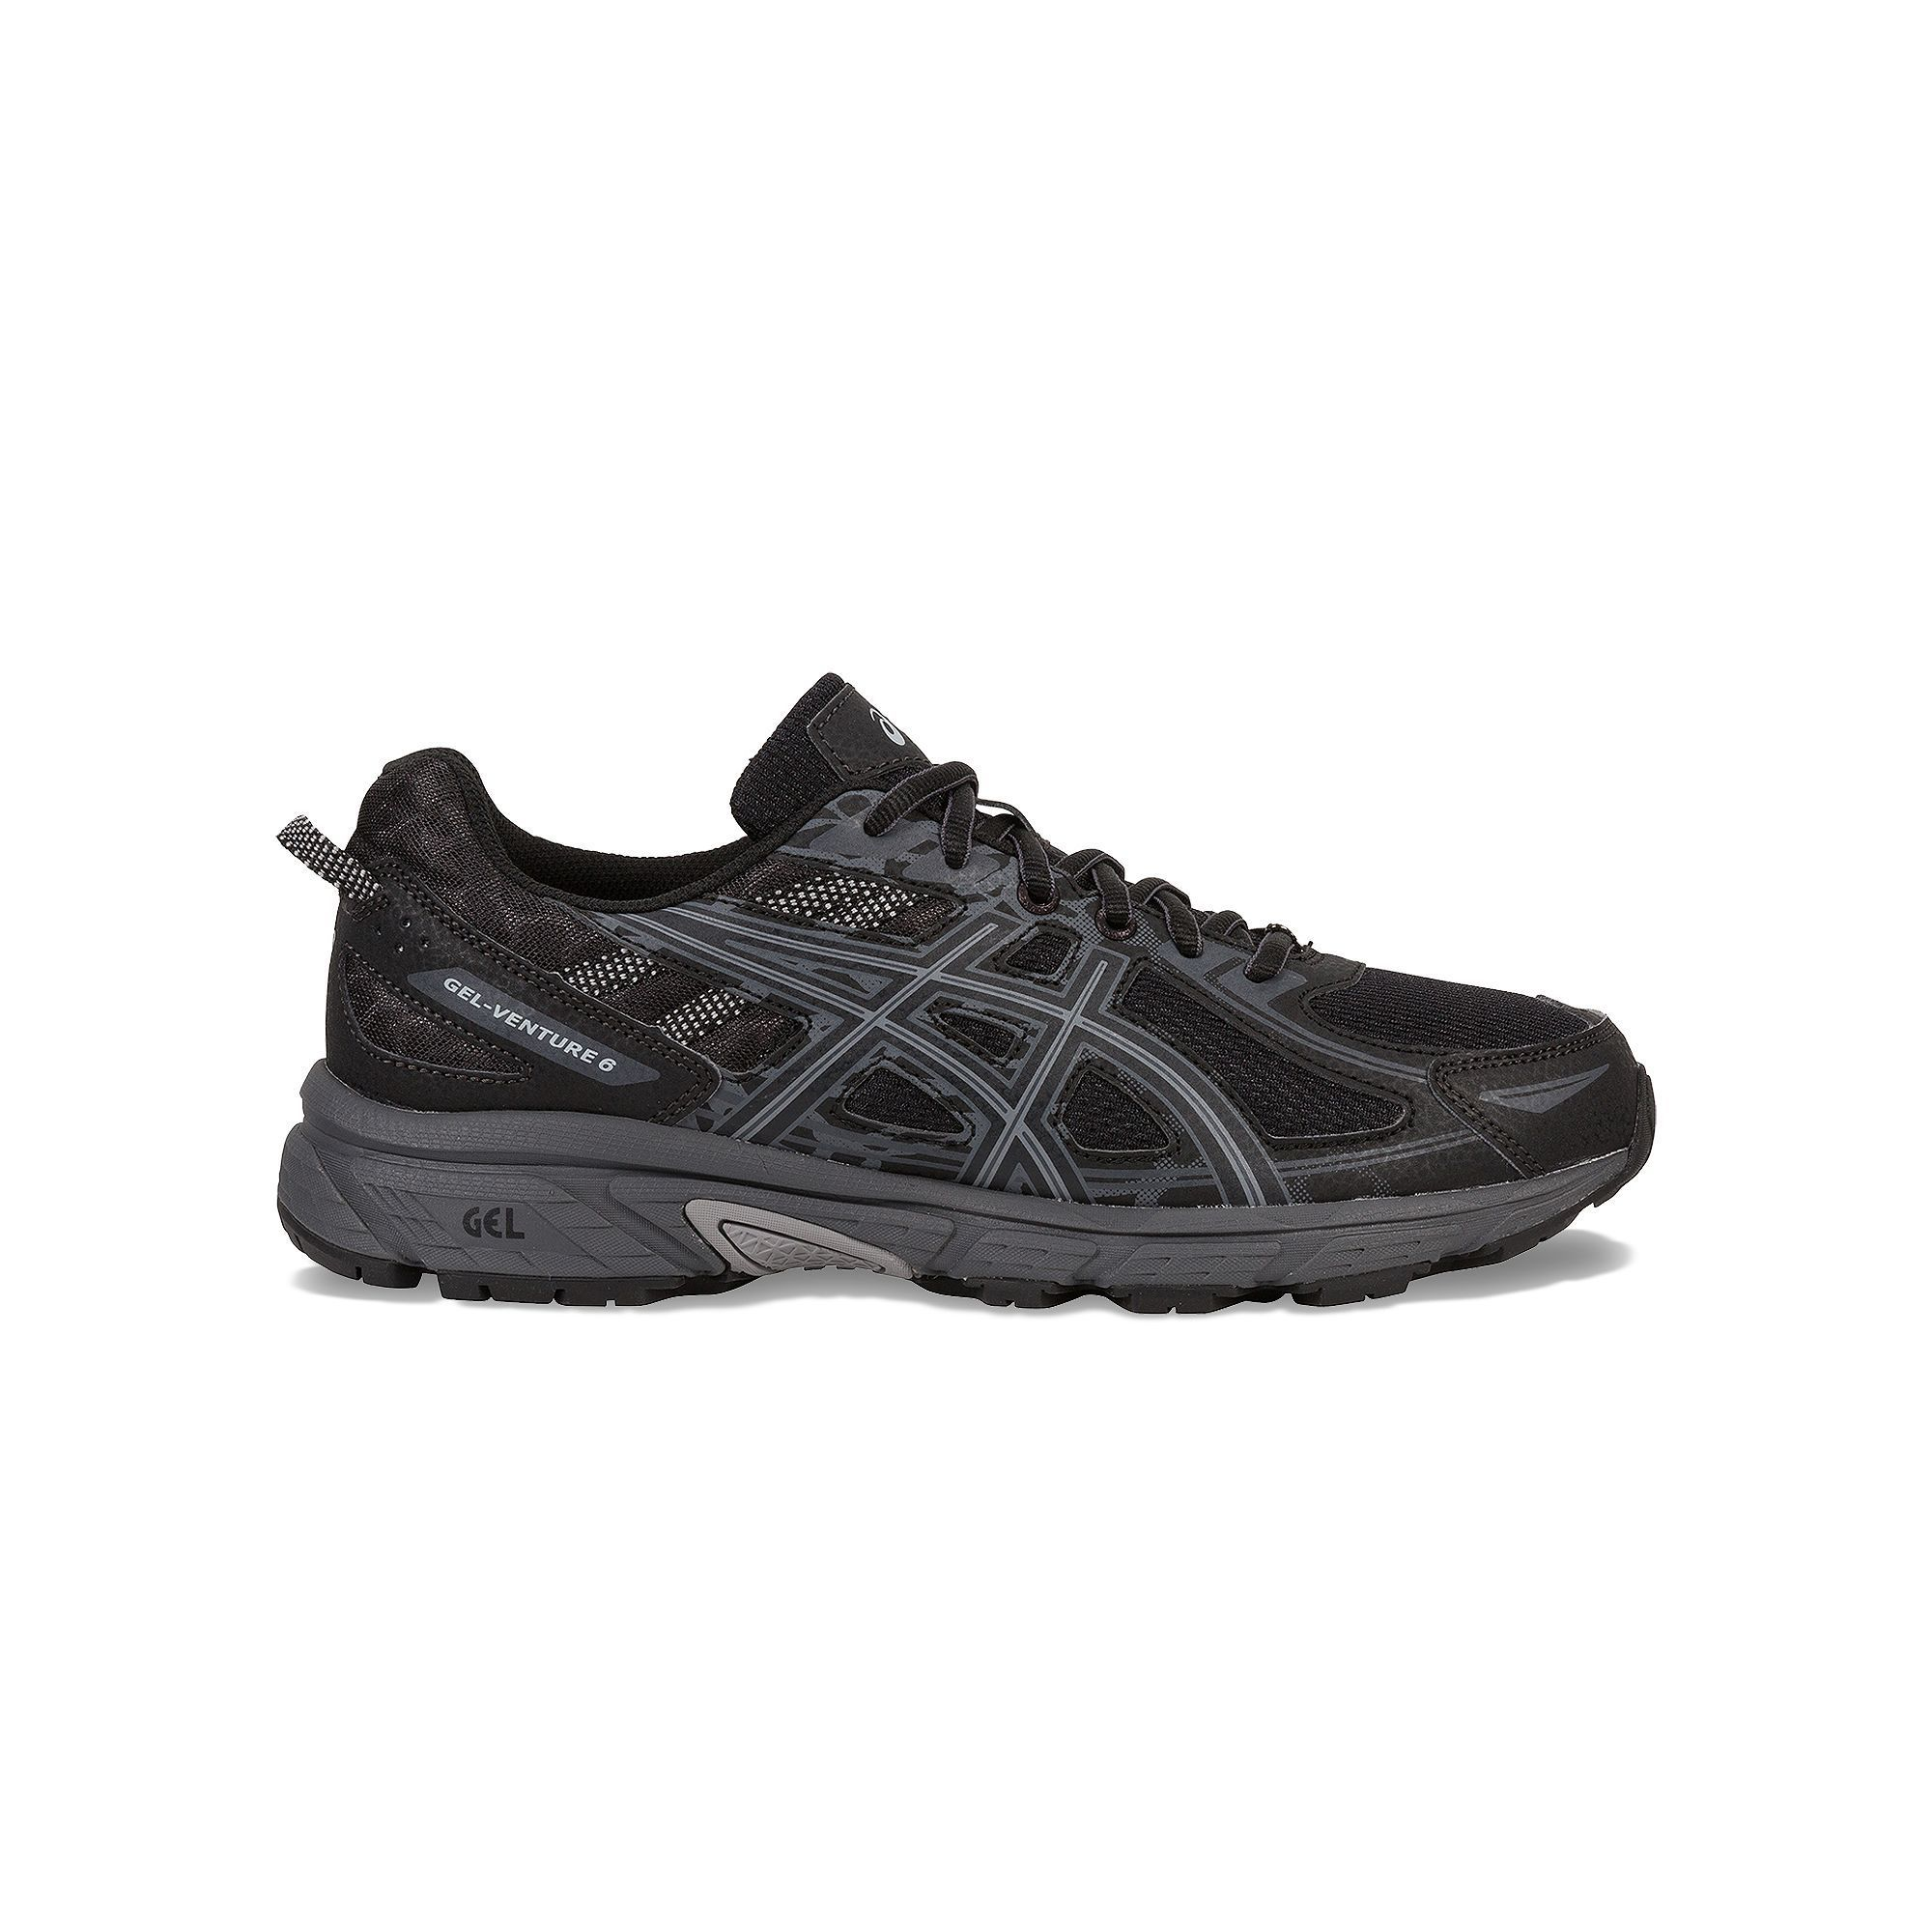 ASICS GelVenture 6 Men's Running Shoes Running shoes